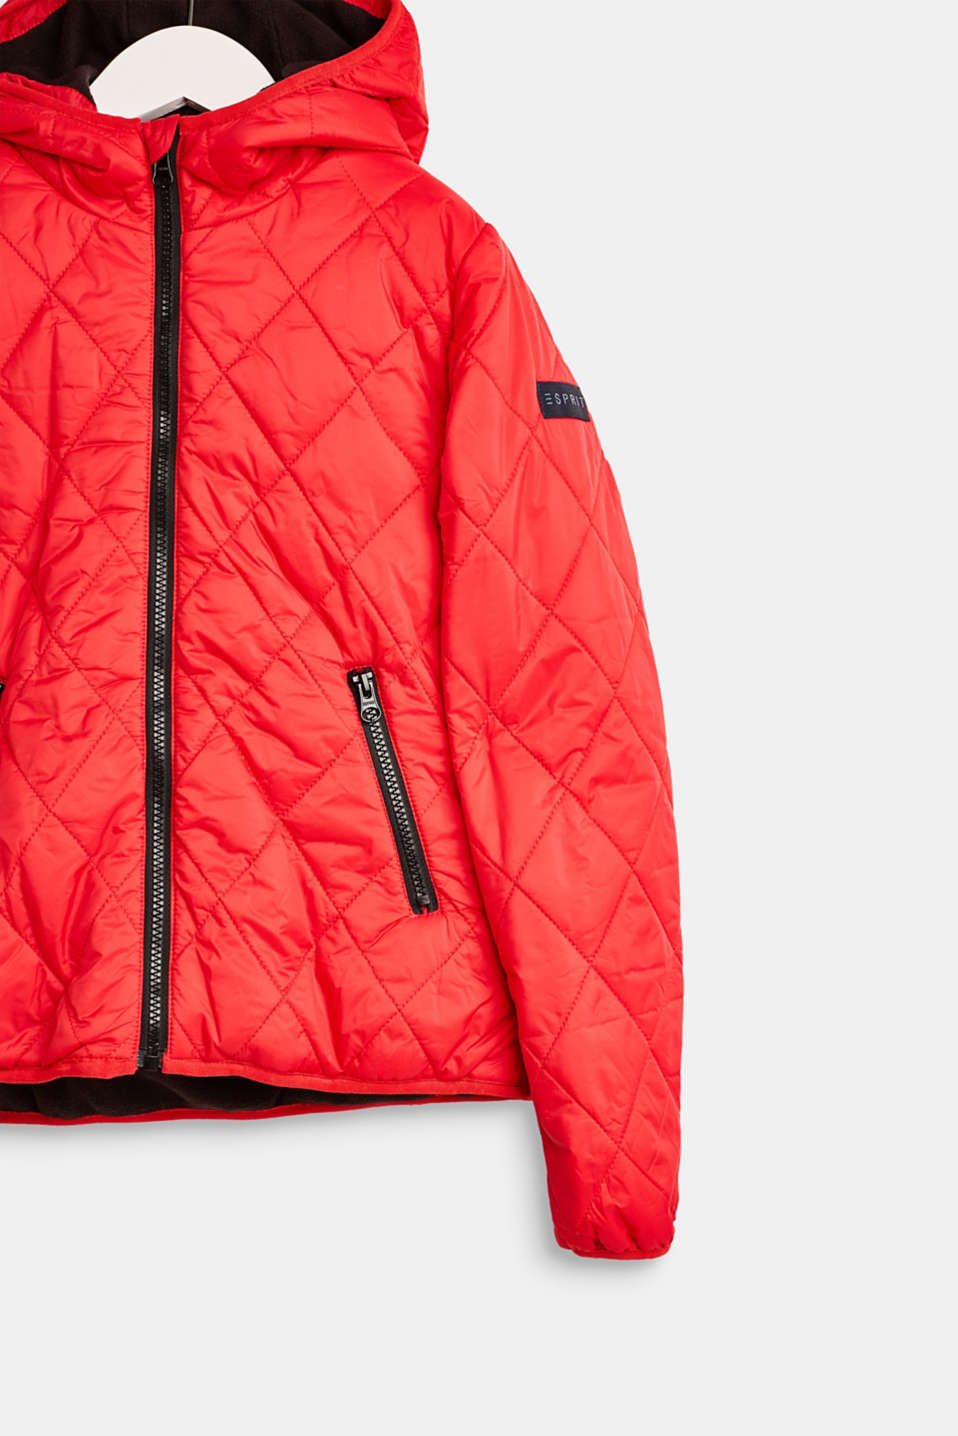 Jackets outdoor woven, LCPOPPY RED, detail image number 3